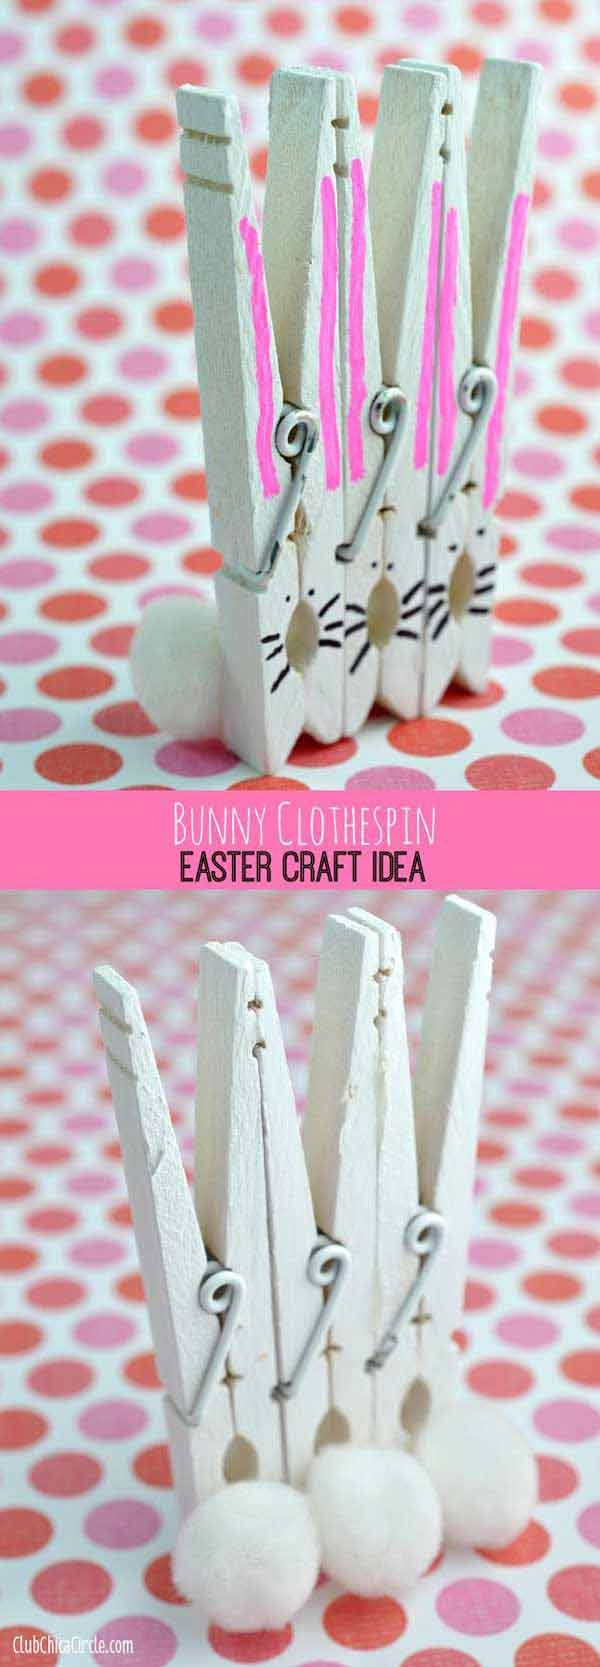 08-DIYs-Can-Make-With-Clothespins